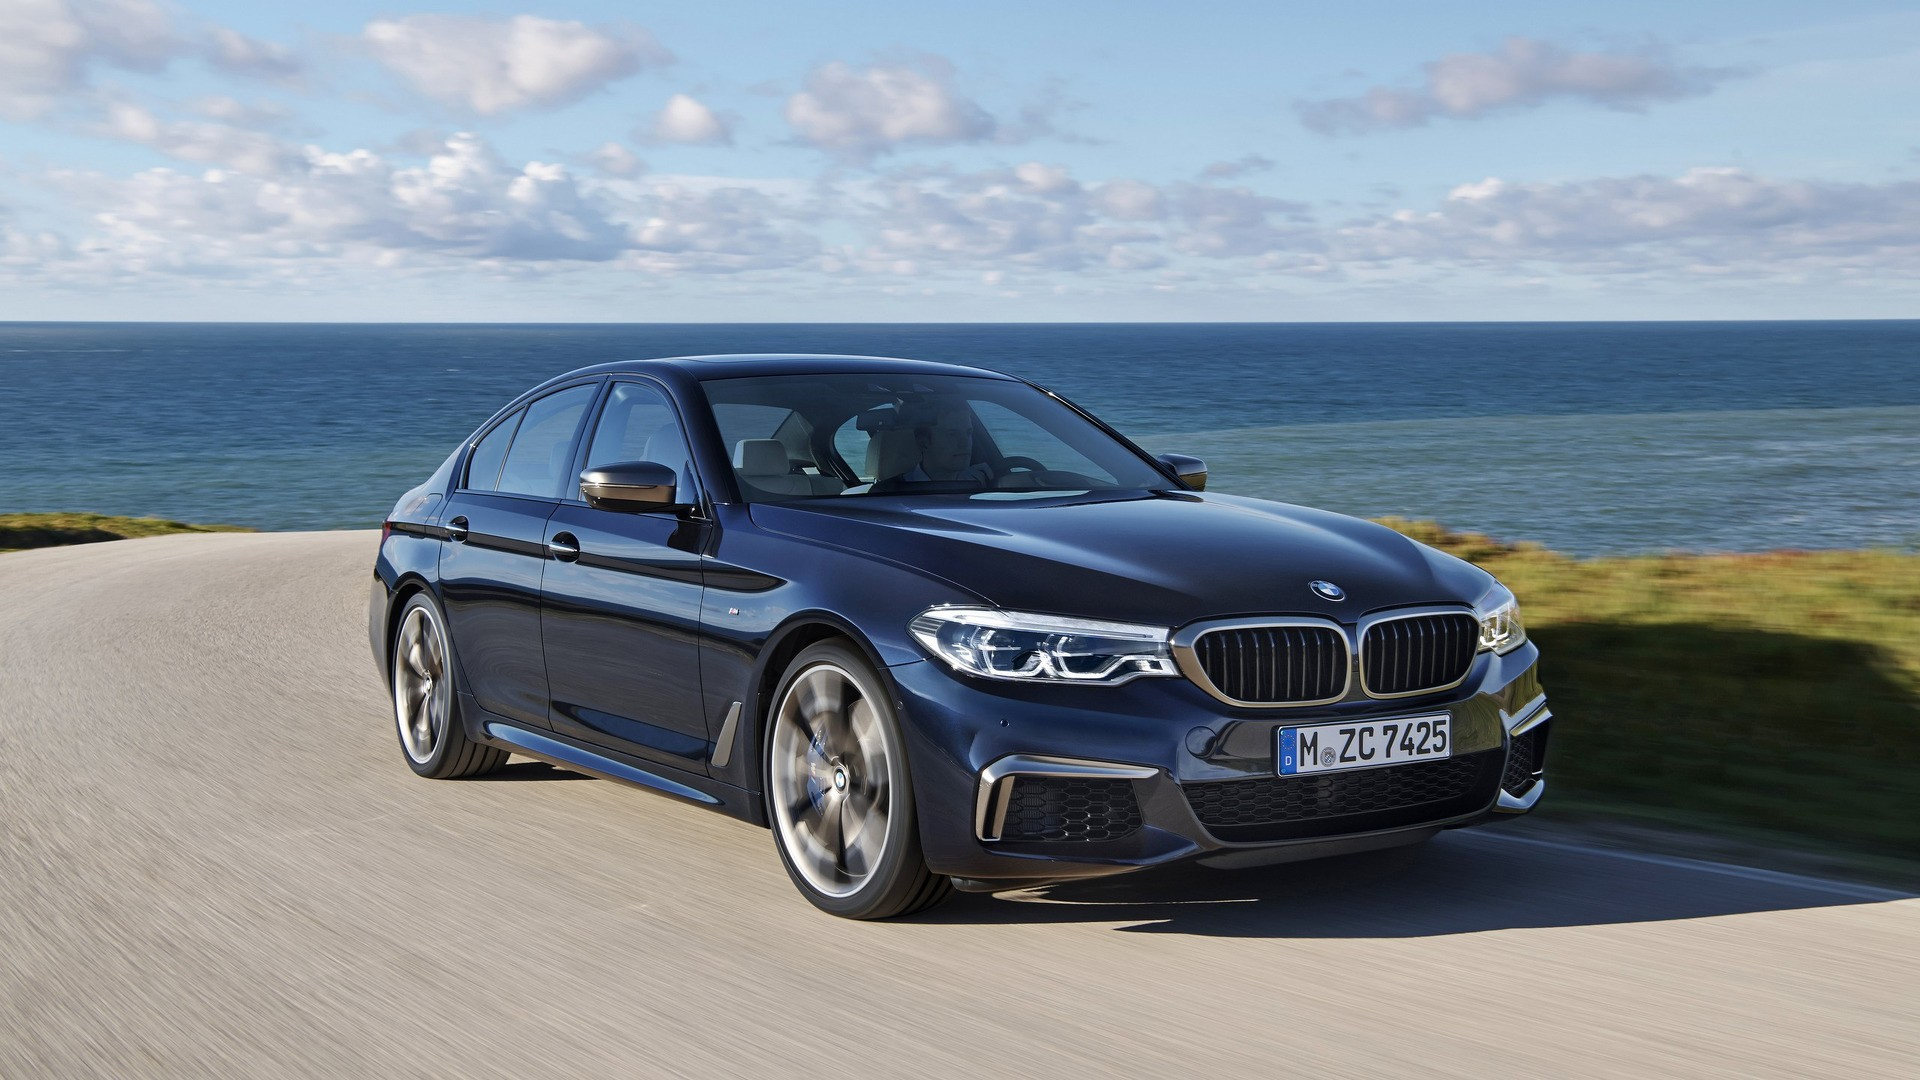 Bmw Introduces 2018 6 Series 530e Iperformance M550i